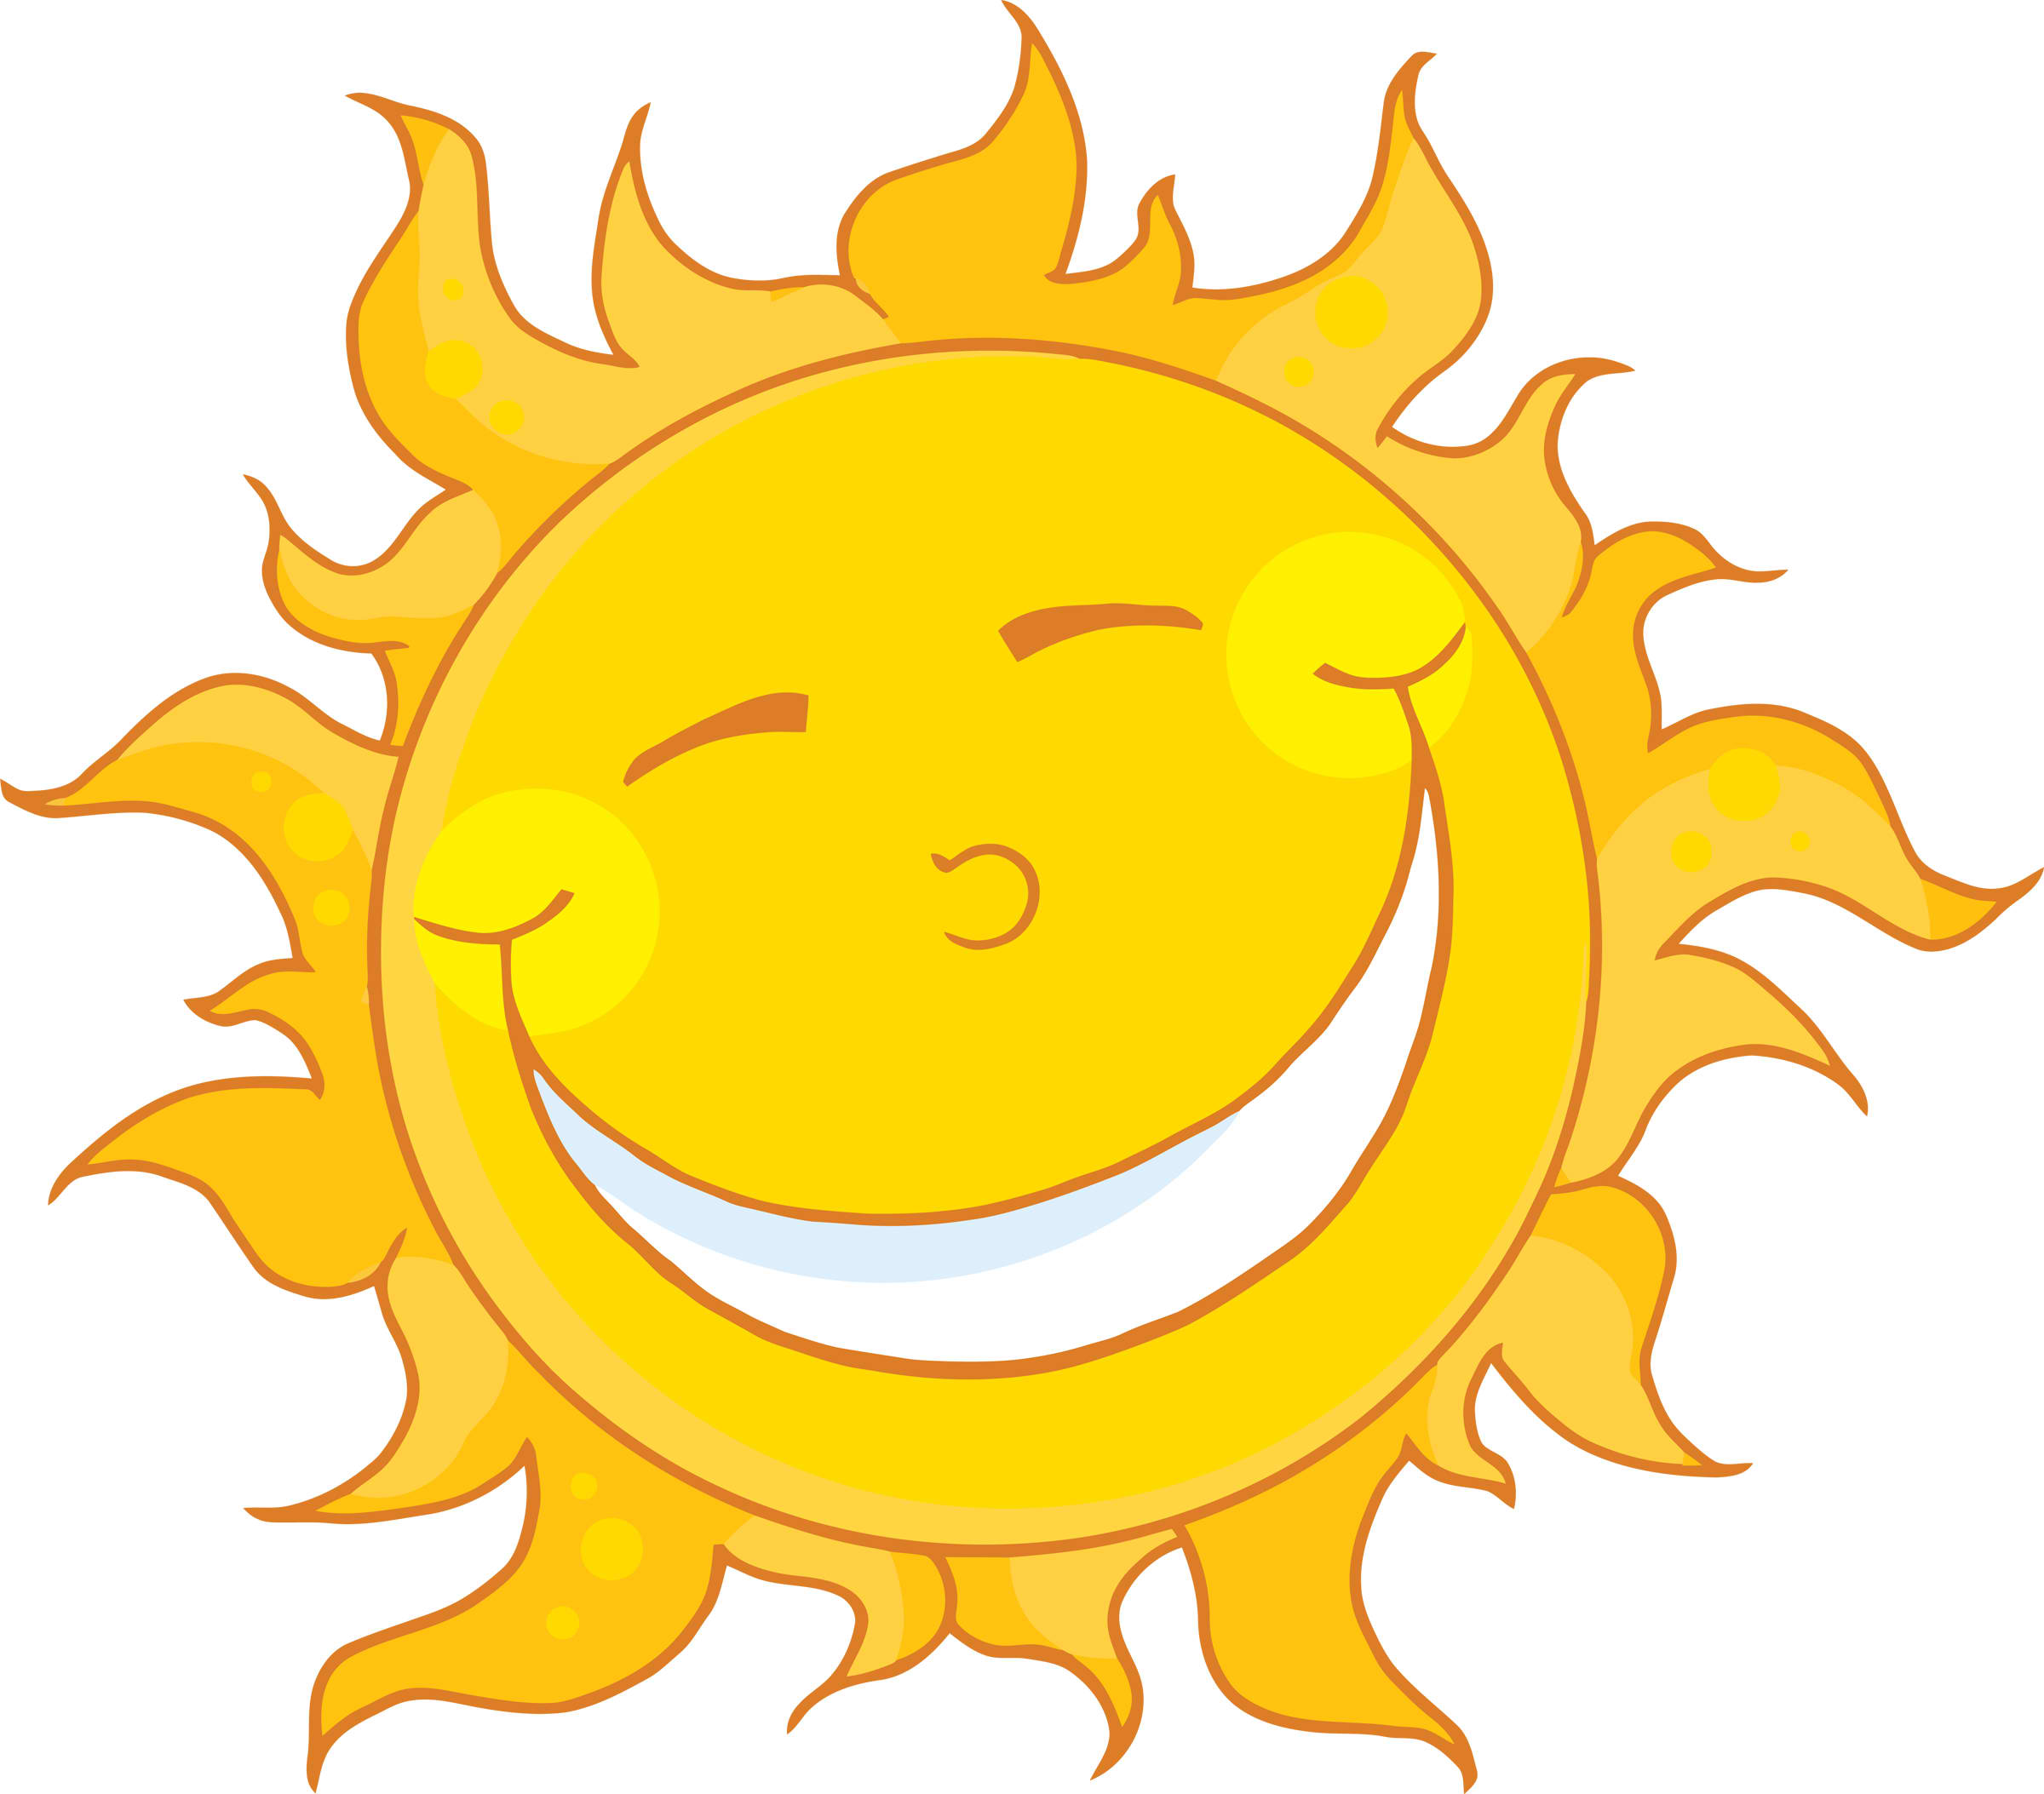 Sunshine happy sun clipart - Happy Sun PNG No Background